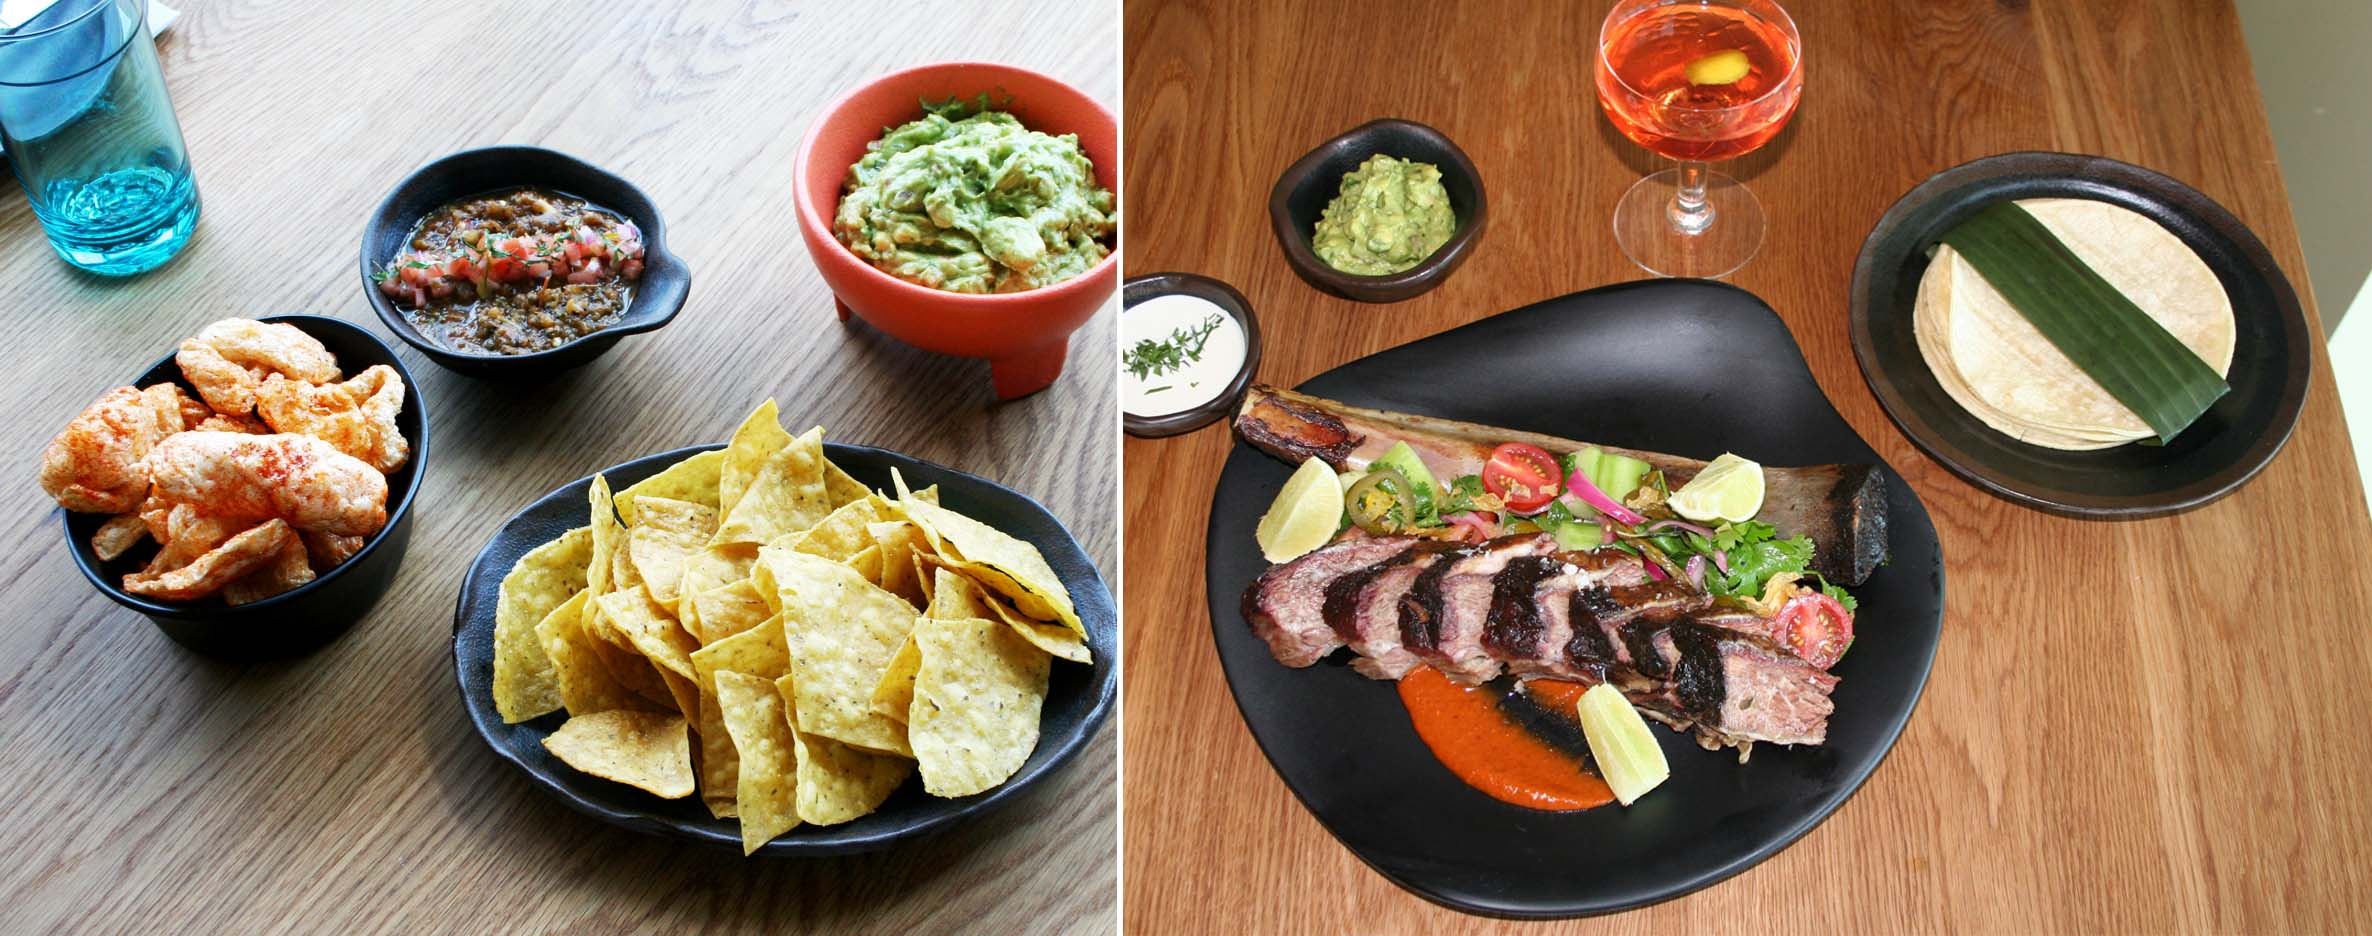 Pepita's menu features Mexican street food such as chips and chicharron with salsa roja and guacamole (left), and smoked short ribs served with corn tortillas, salsas and guacamole. (Photos: Mark Heckathorn/DC on Heels)